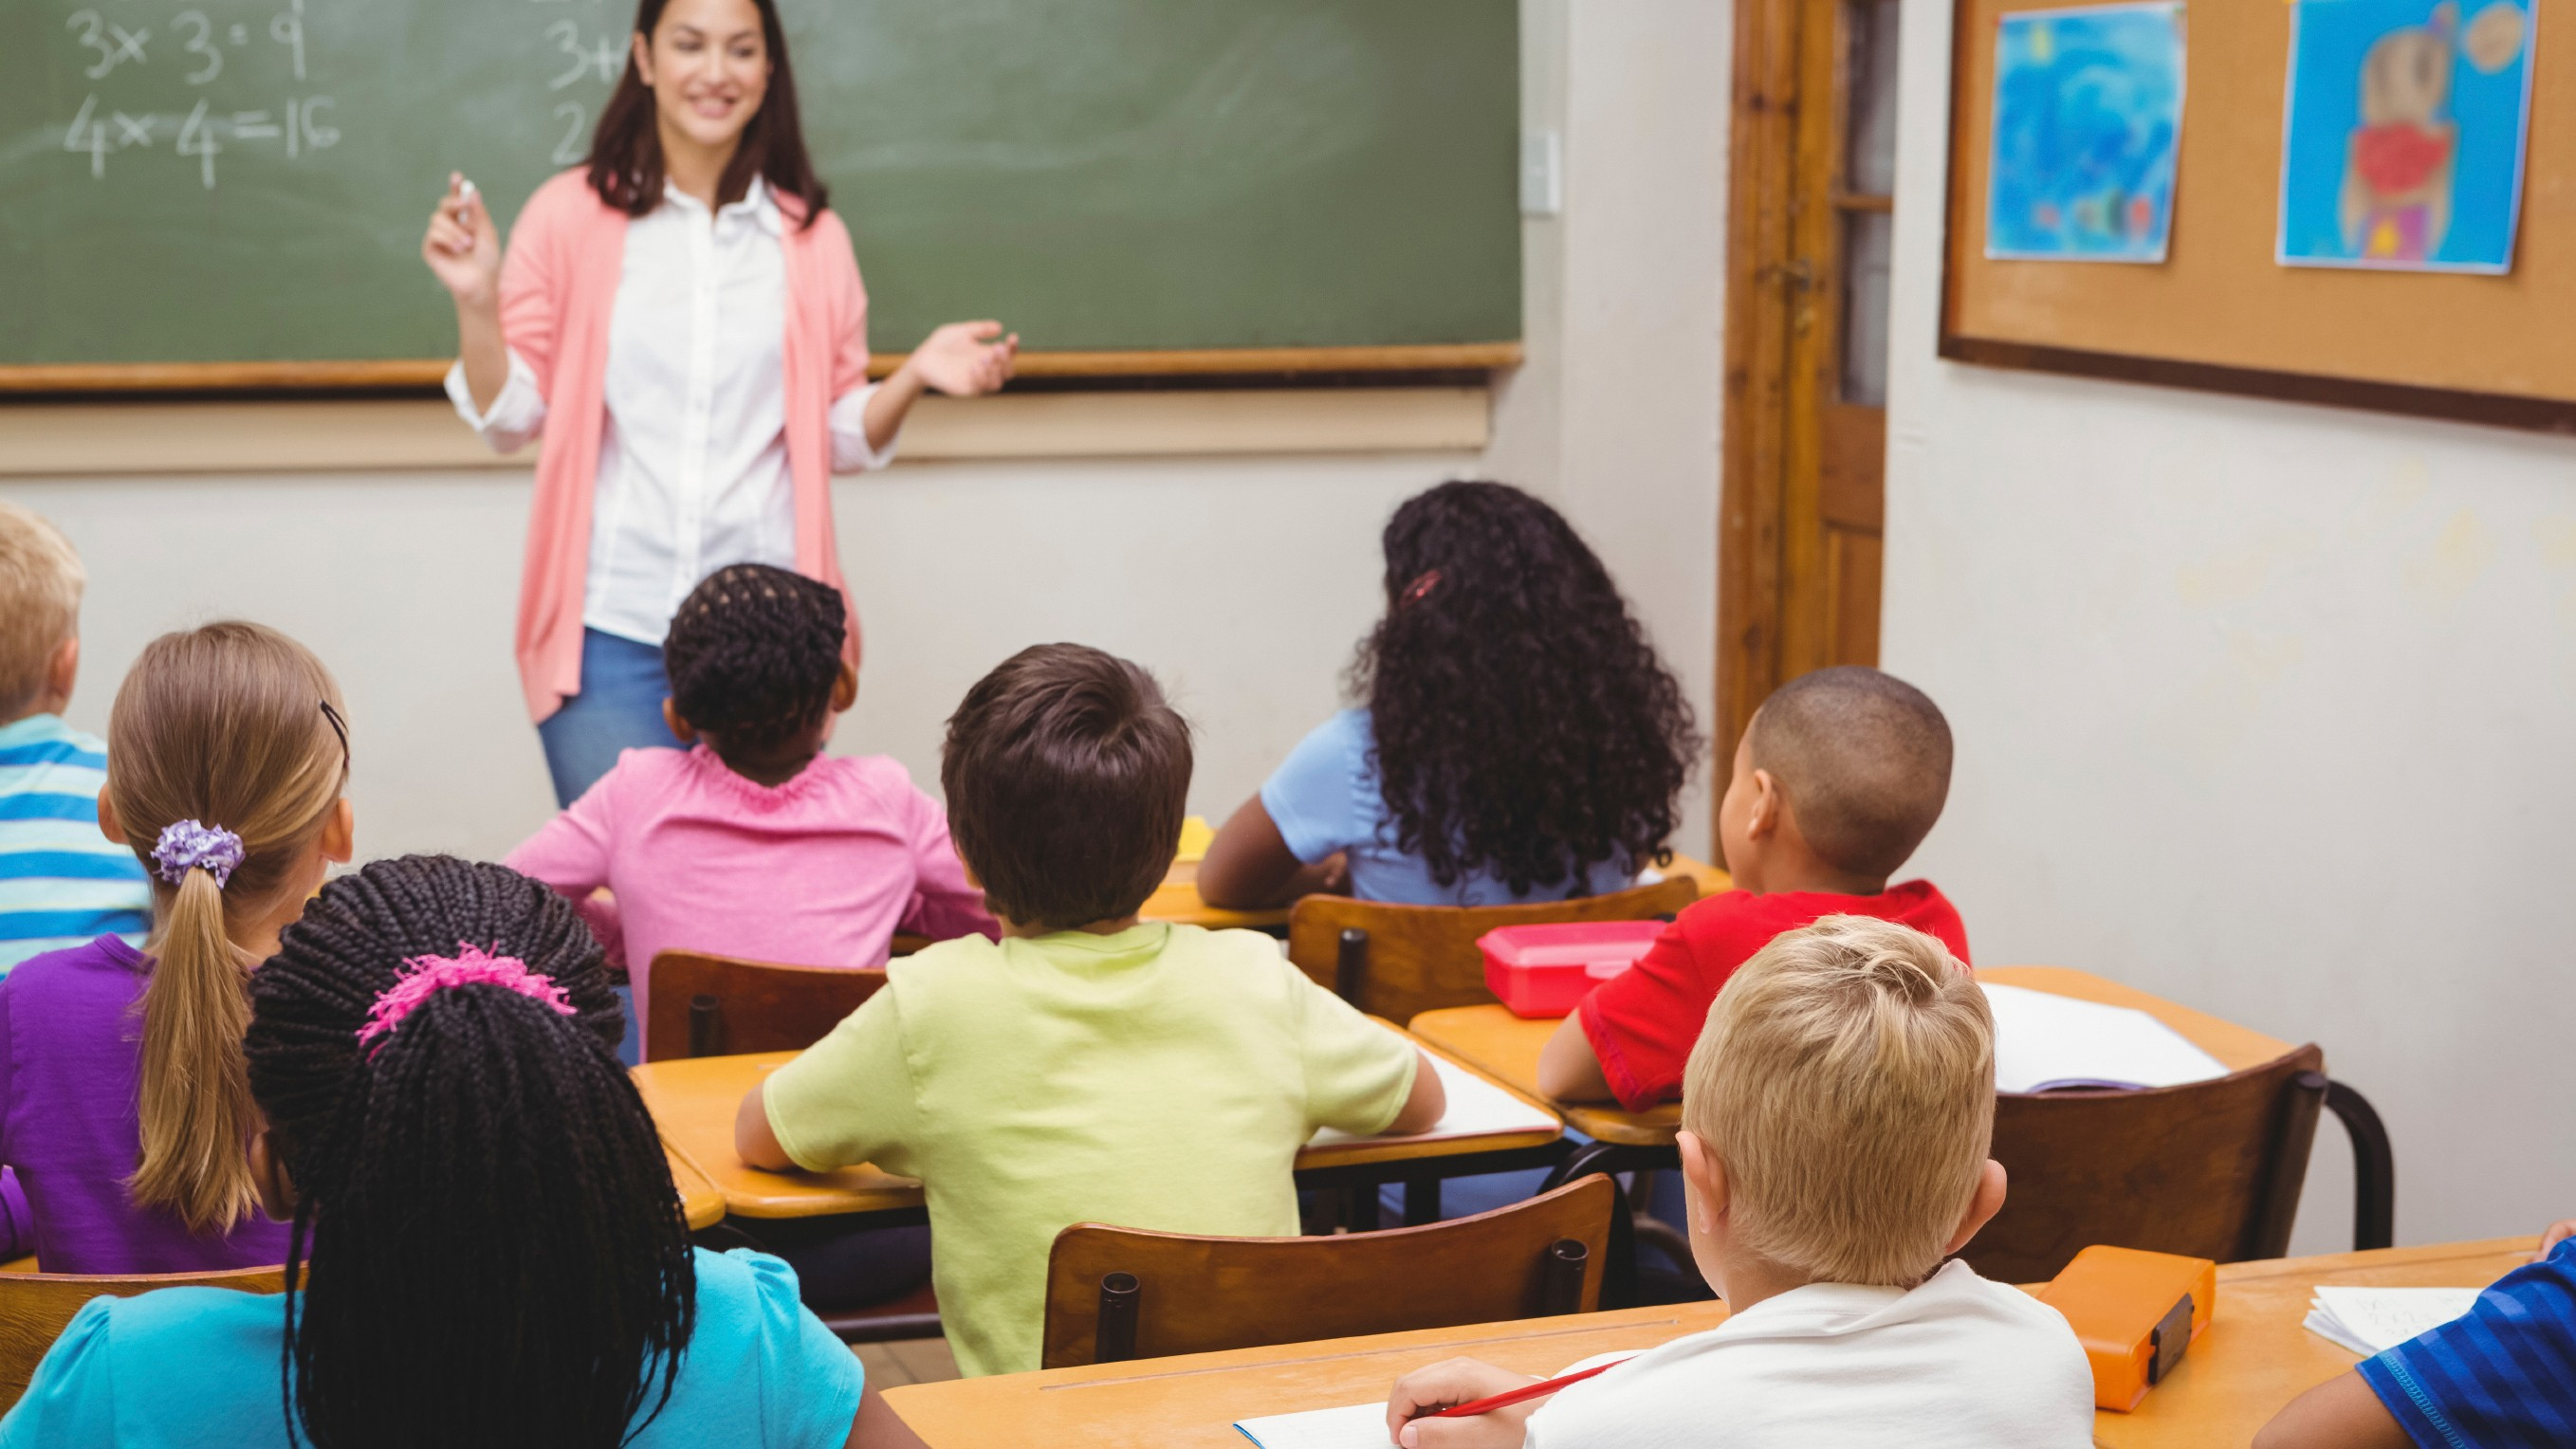 Which states can I move to in order to be a teacher?